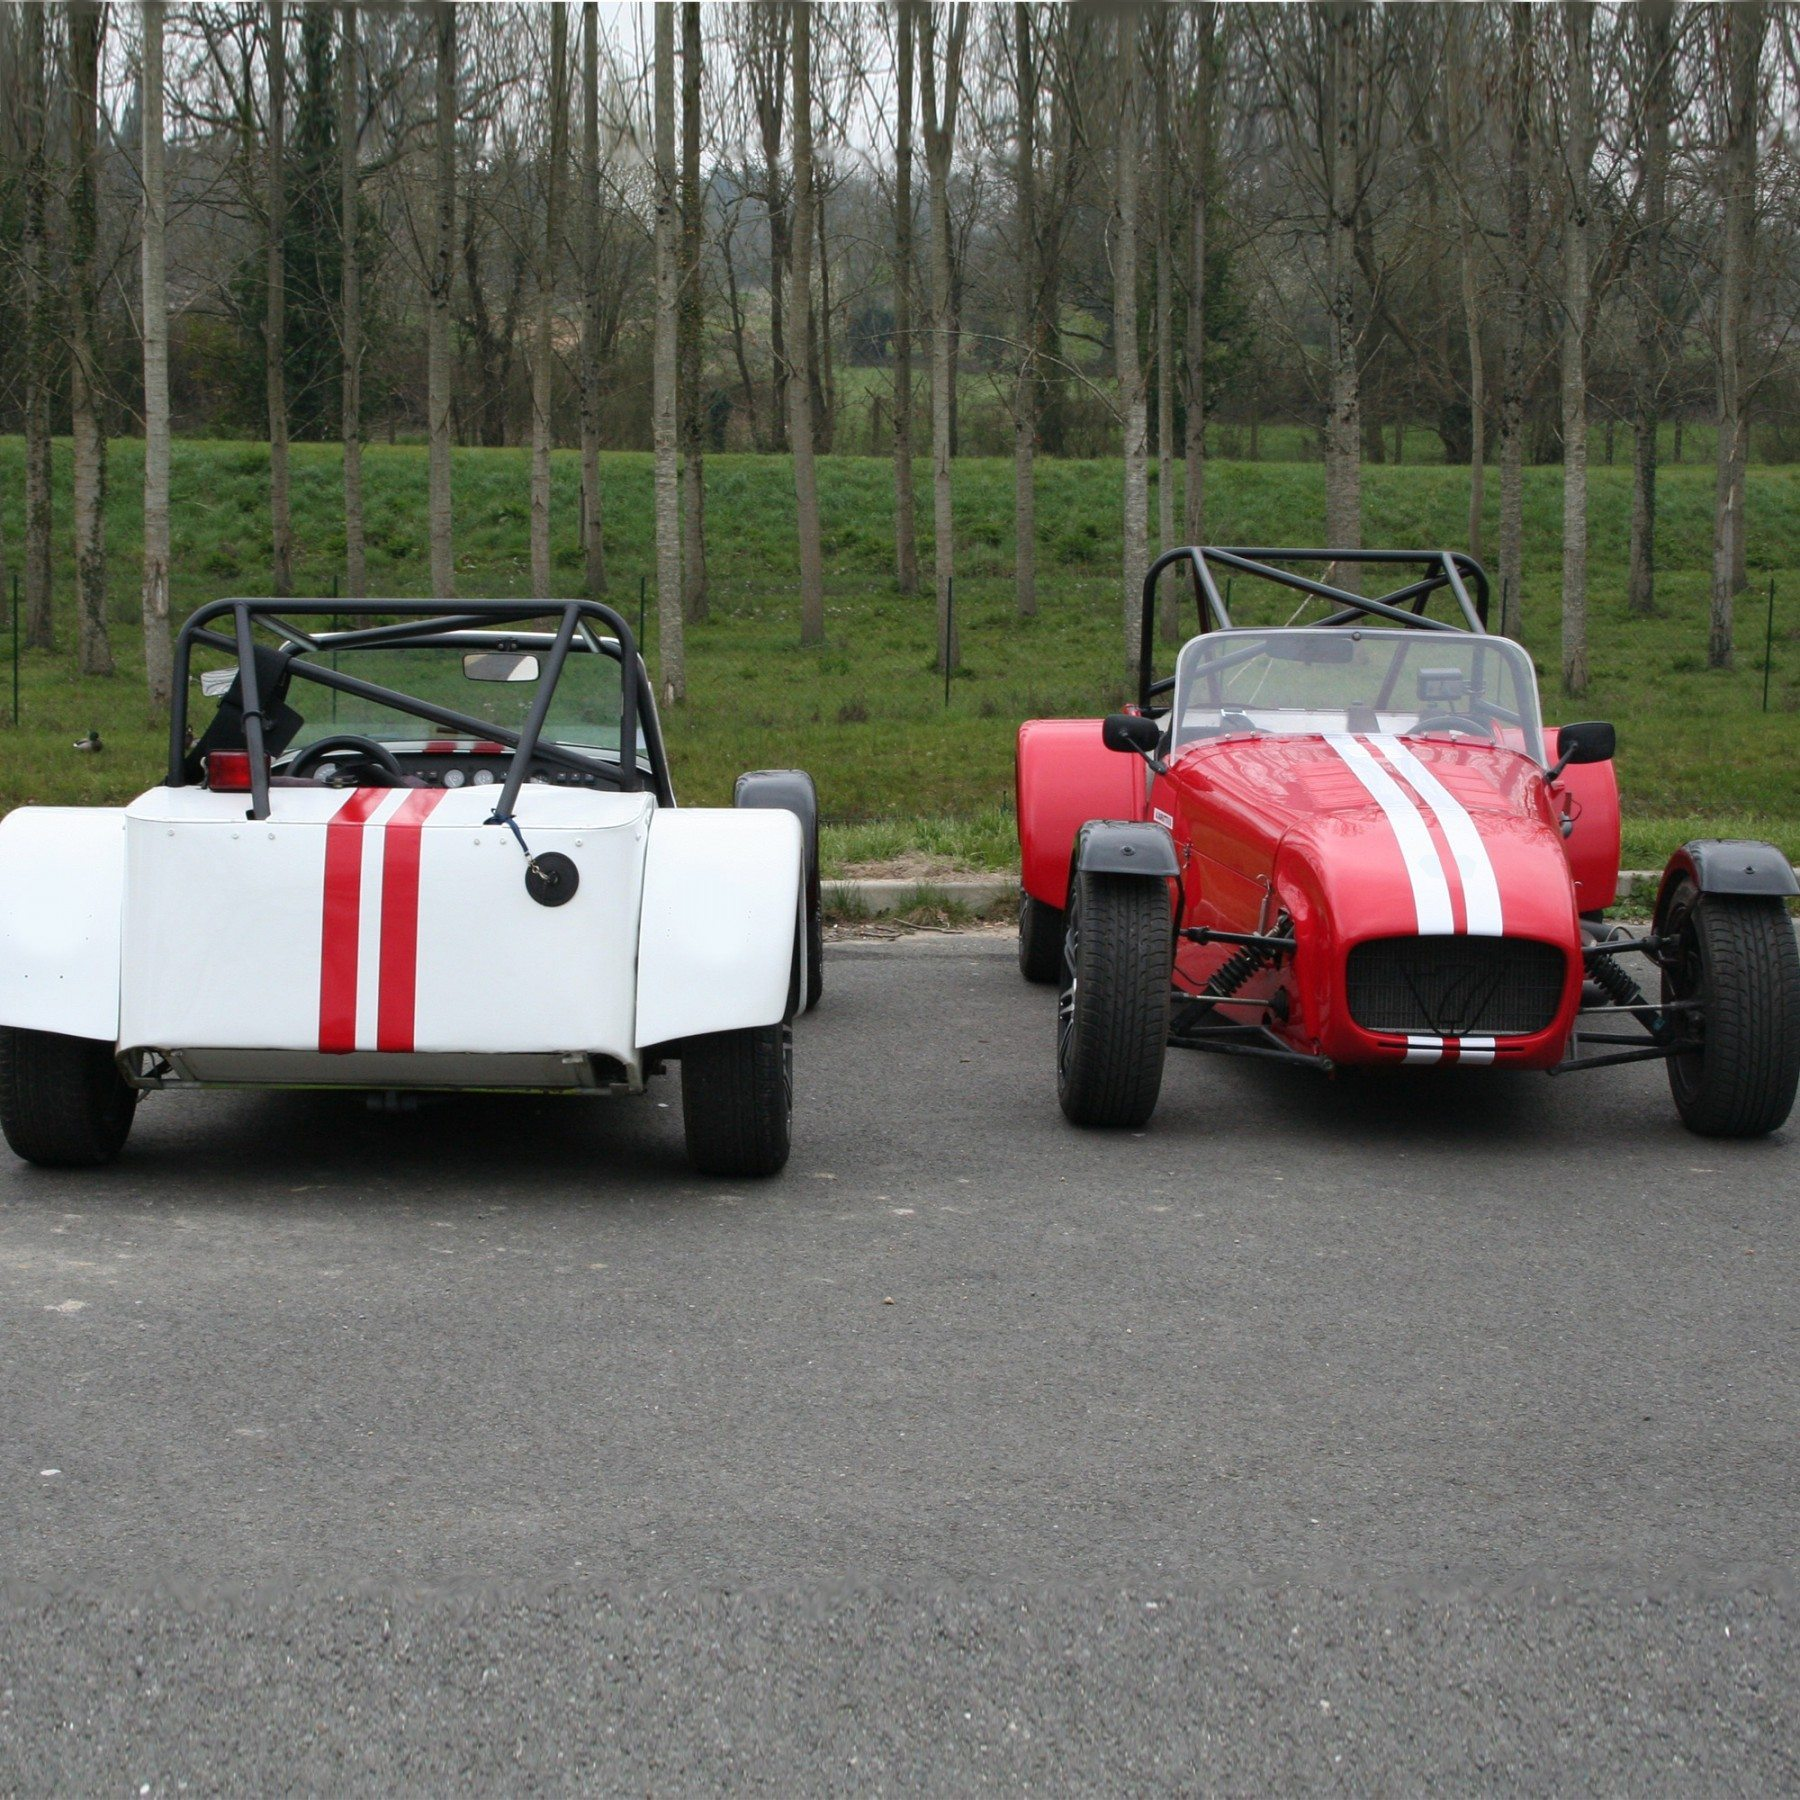 pilotage caterham 1600k circuit long de fay de bretagne. Black Bedroom Furniture Sets. Home Design Ideas